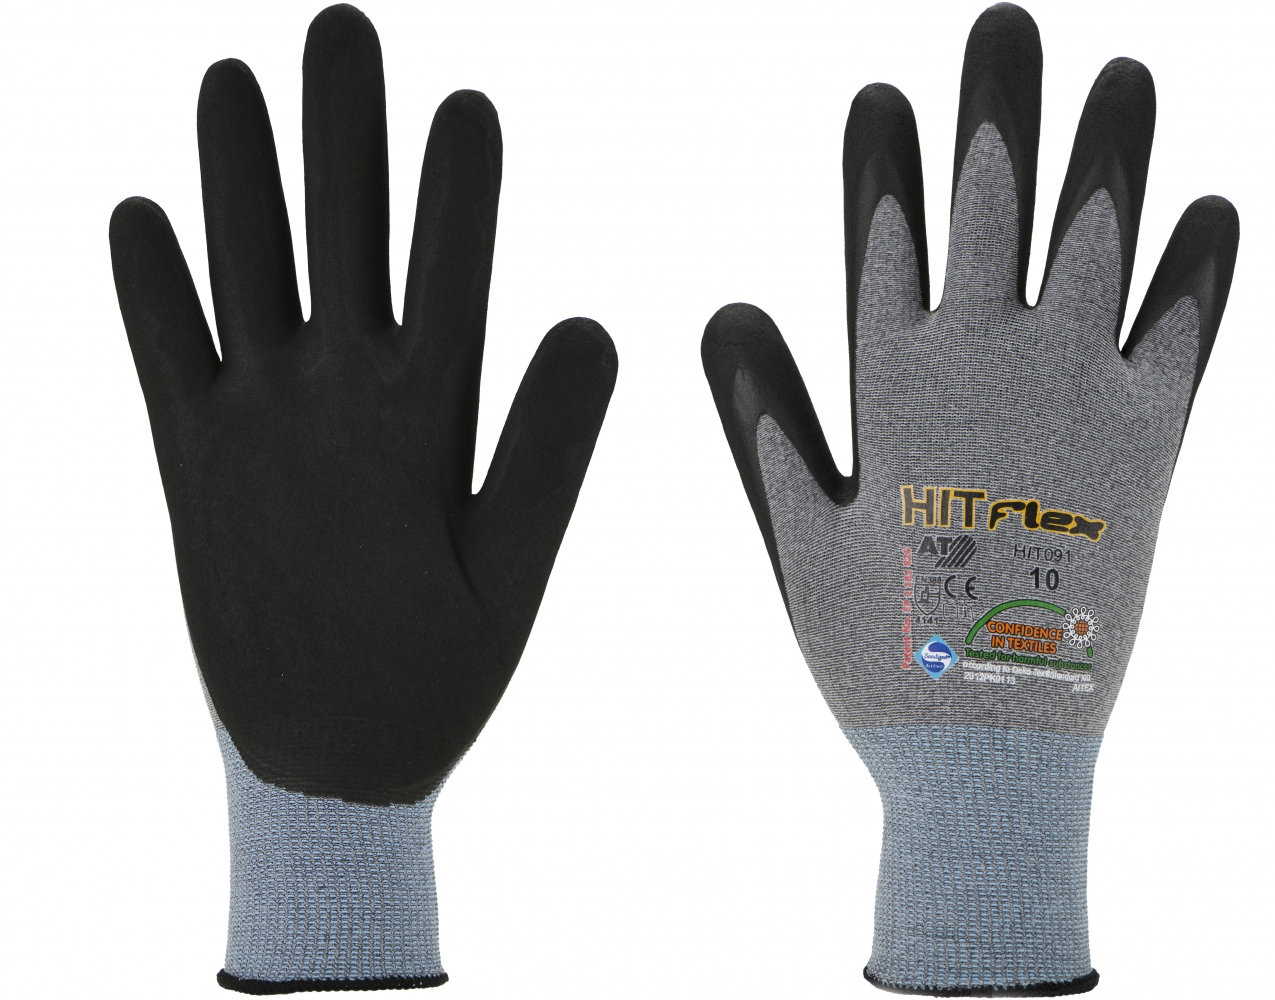 pics/Asatex/Handschuhe/asatex-hit091-breathing-working-gloves-for-mechanics-en388.jpg